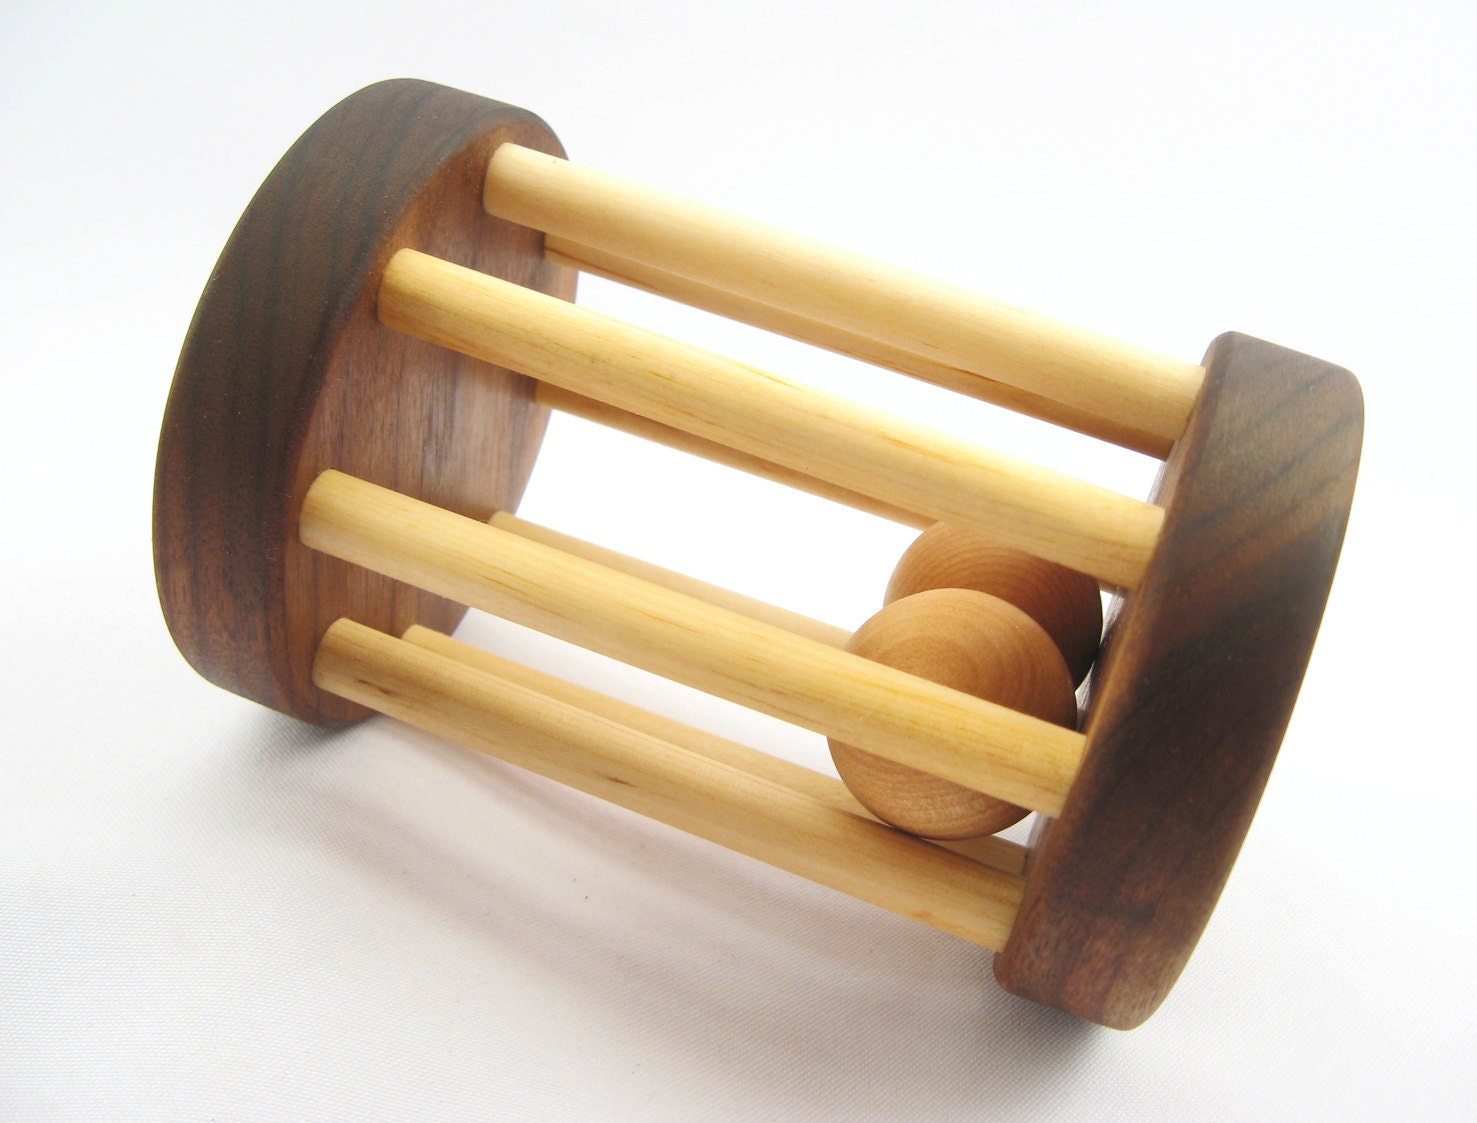 wood rattle for baby, all natural wooden toy, organic finish, teether safe, fun for eco-friendly baby, toddler, children